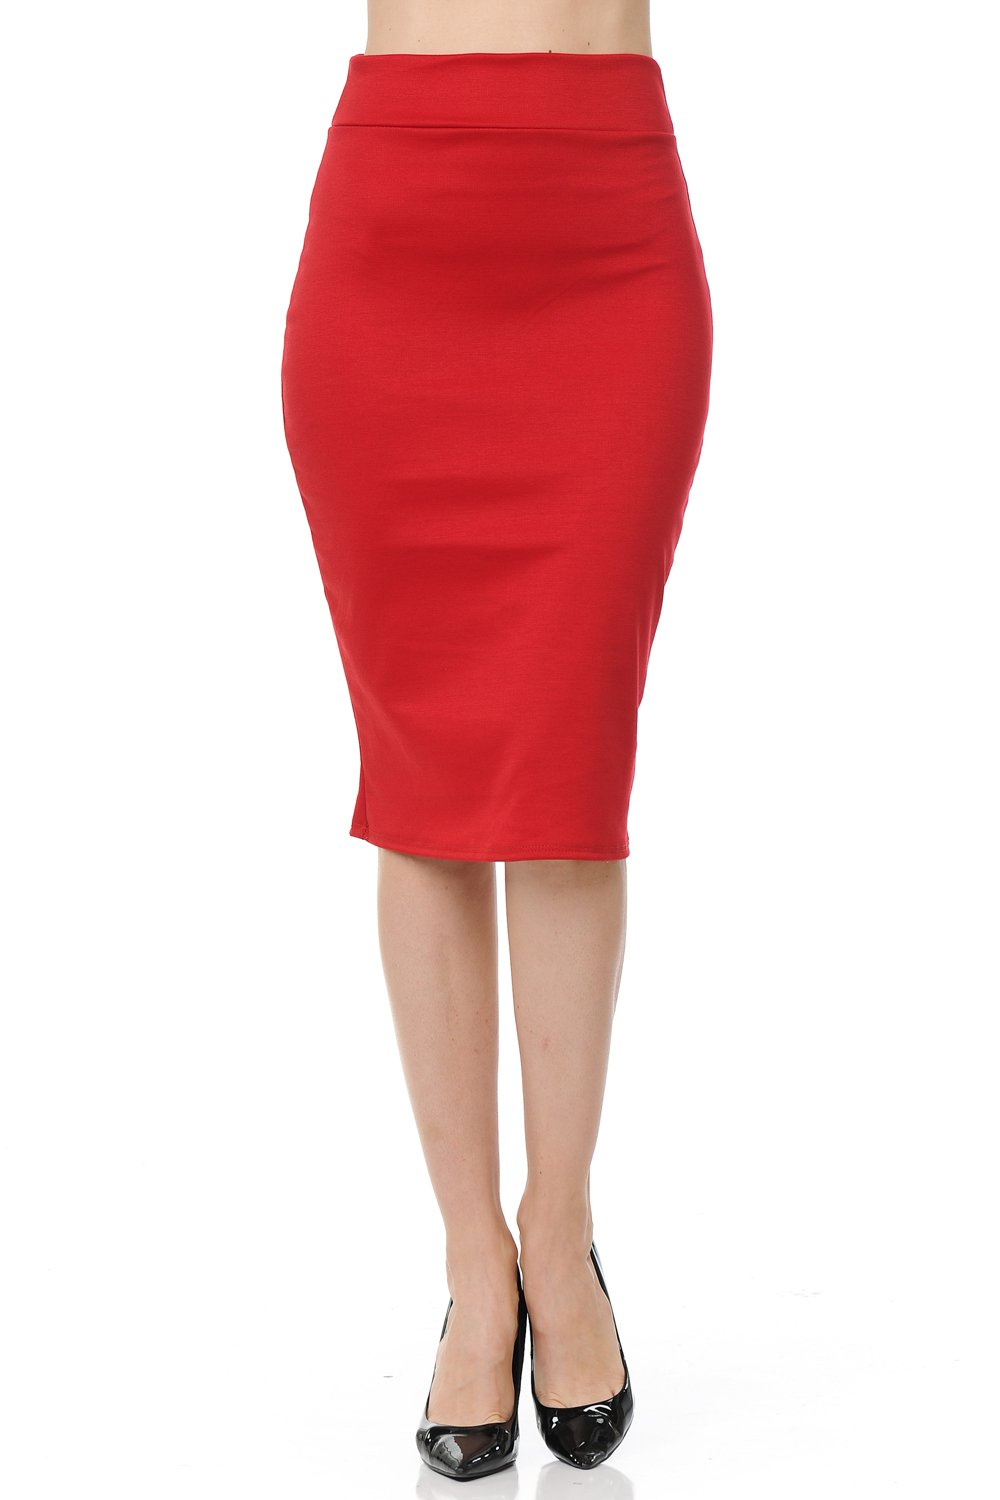 SSOULM Women's Below Knee Stretchy Midi Pencil Skirt for Office Wear RED 1XL